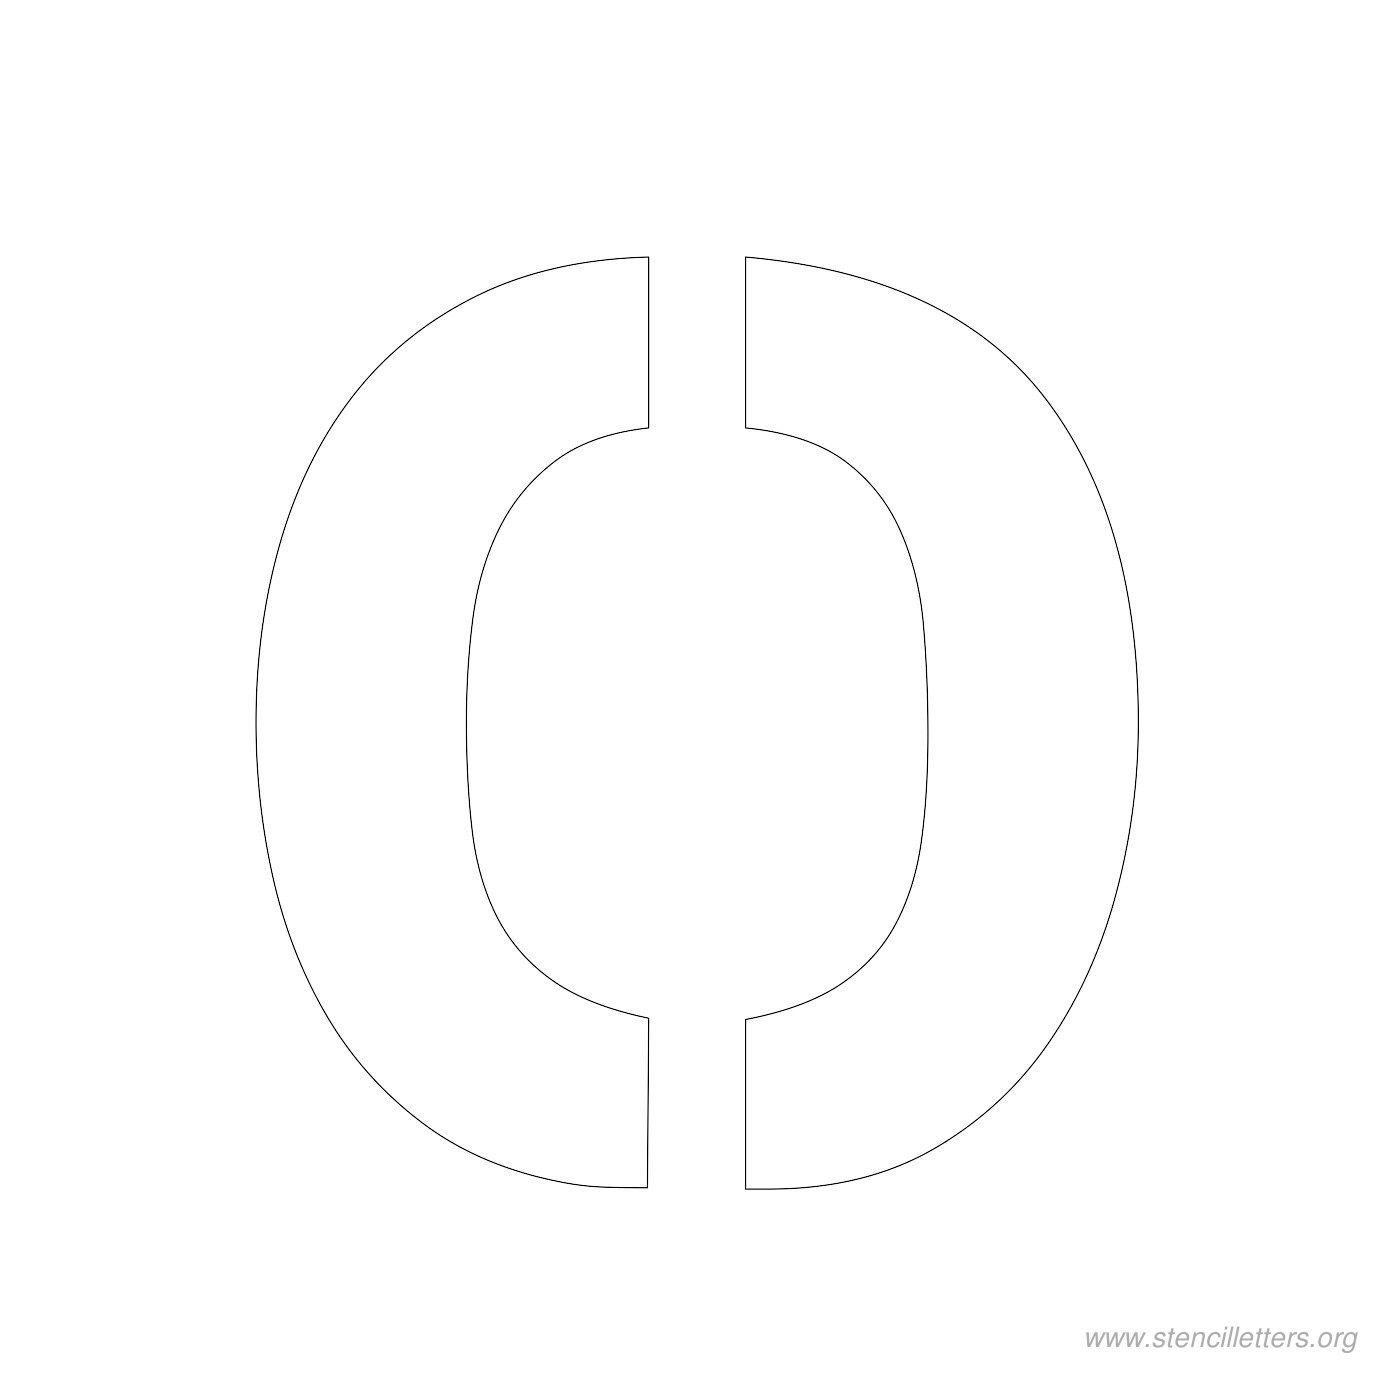 3-inch-letter-stencils_328560  Inch Letter Templates on basic cover, sample request, sample business,